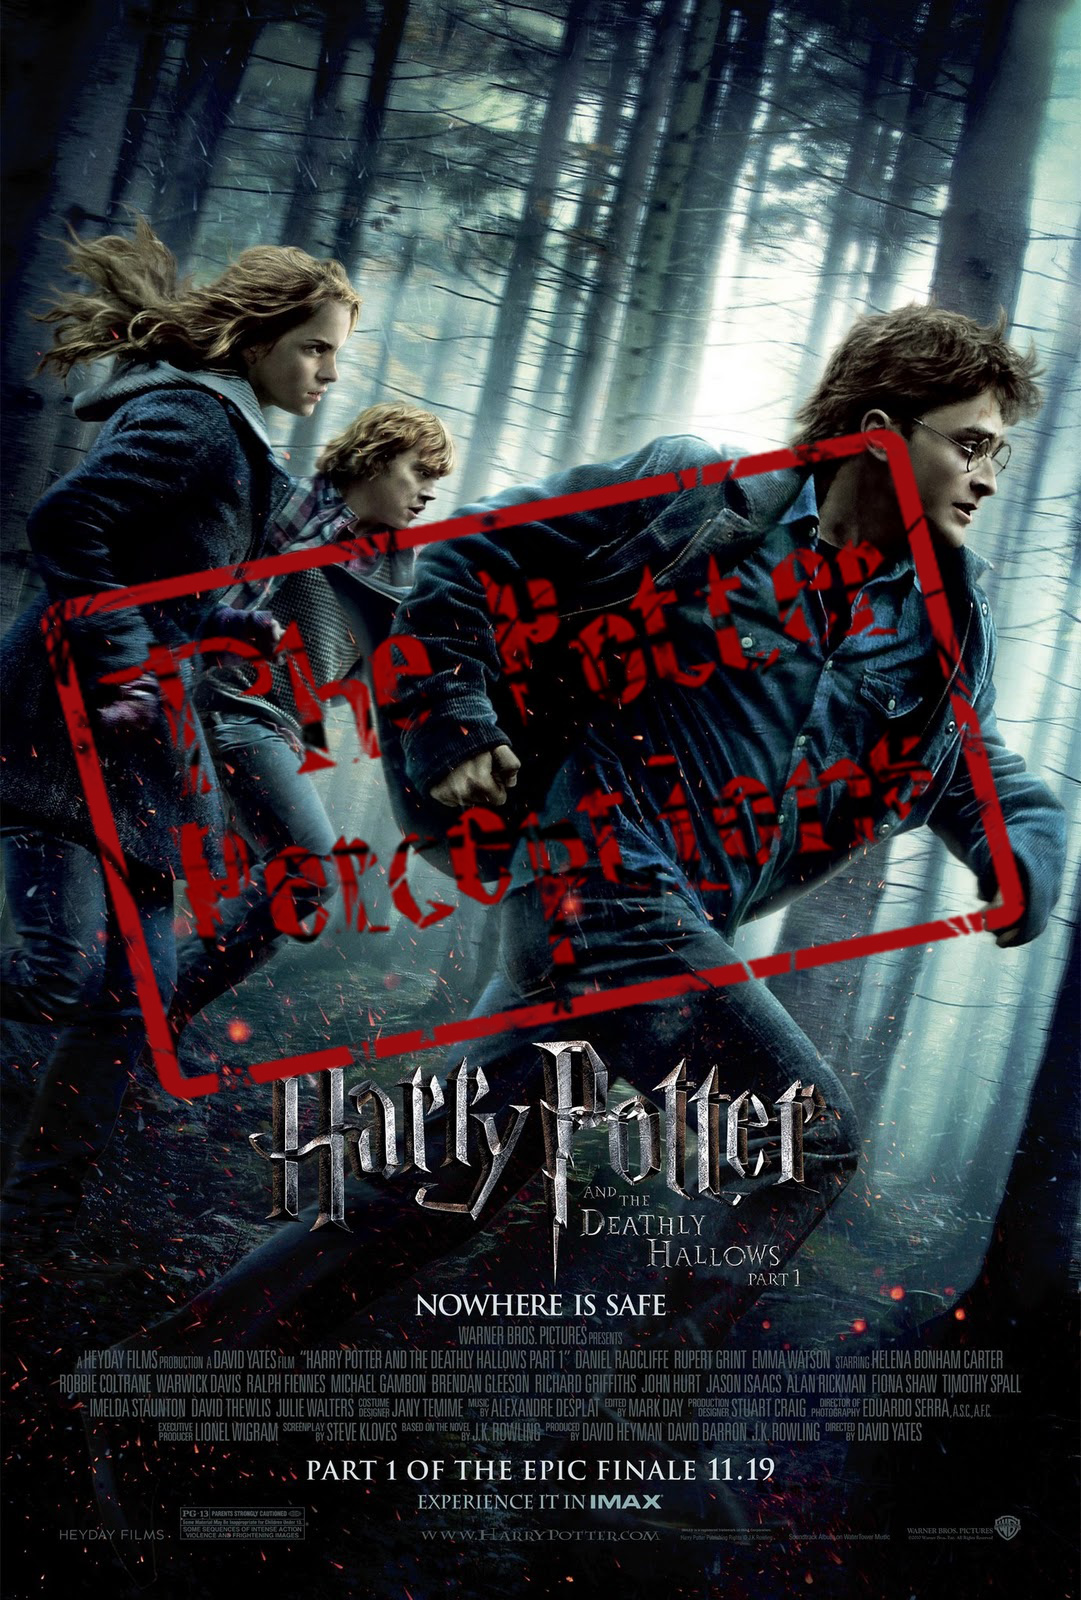 The potter perceptions the deathly hallows part 1 2010 the harry potter and the deathly hallows part 1 biocorpaavc Choice Image